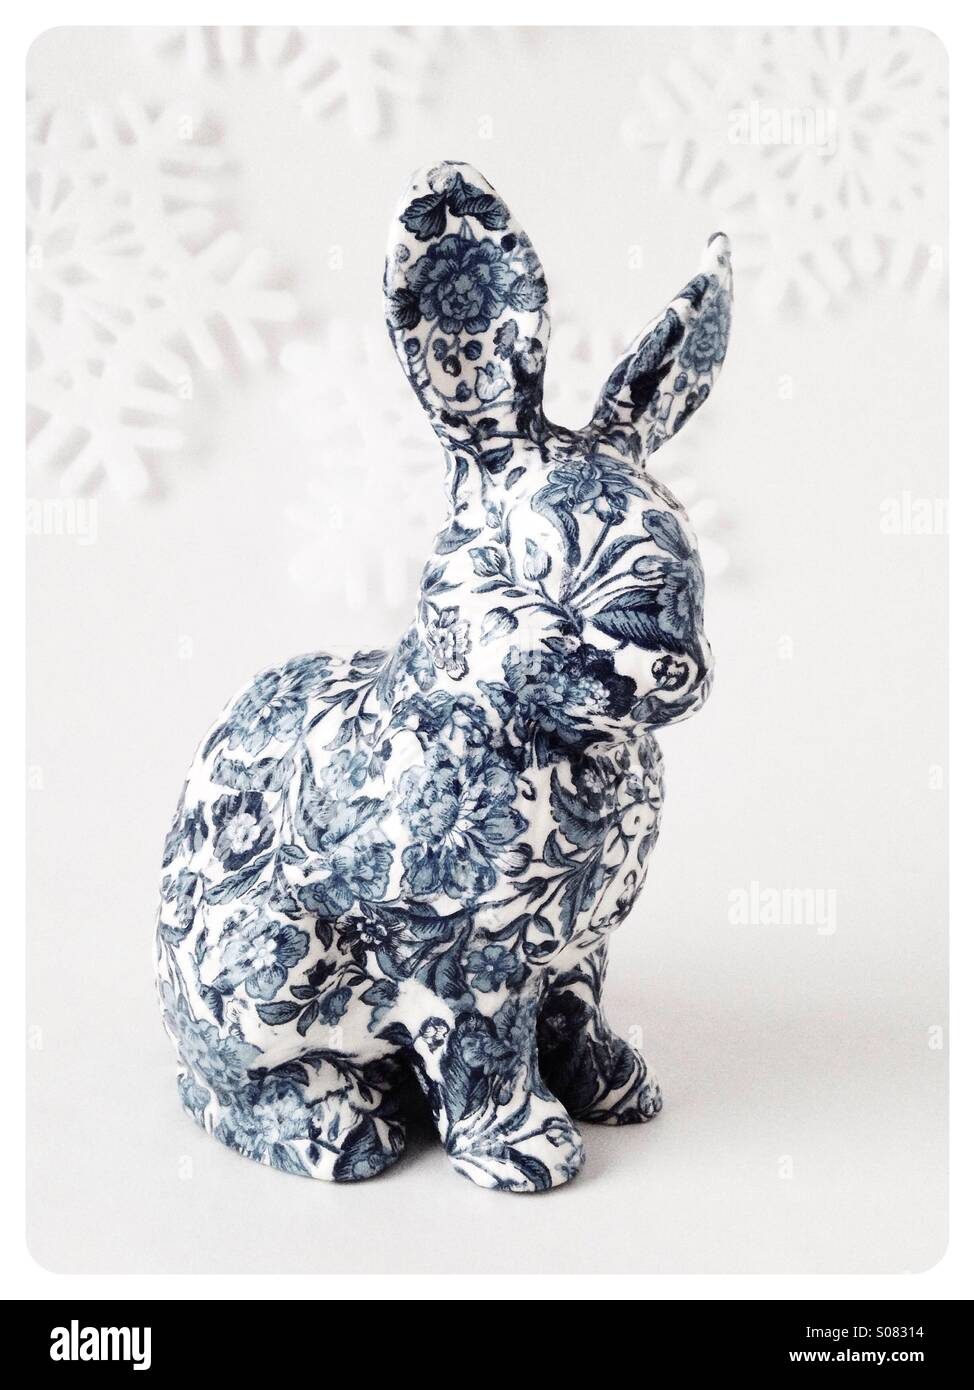 A bunny figurine with a snowflake background. - Stock Image